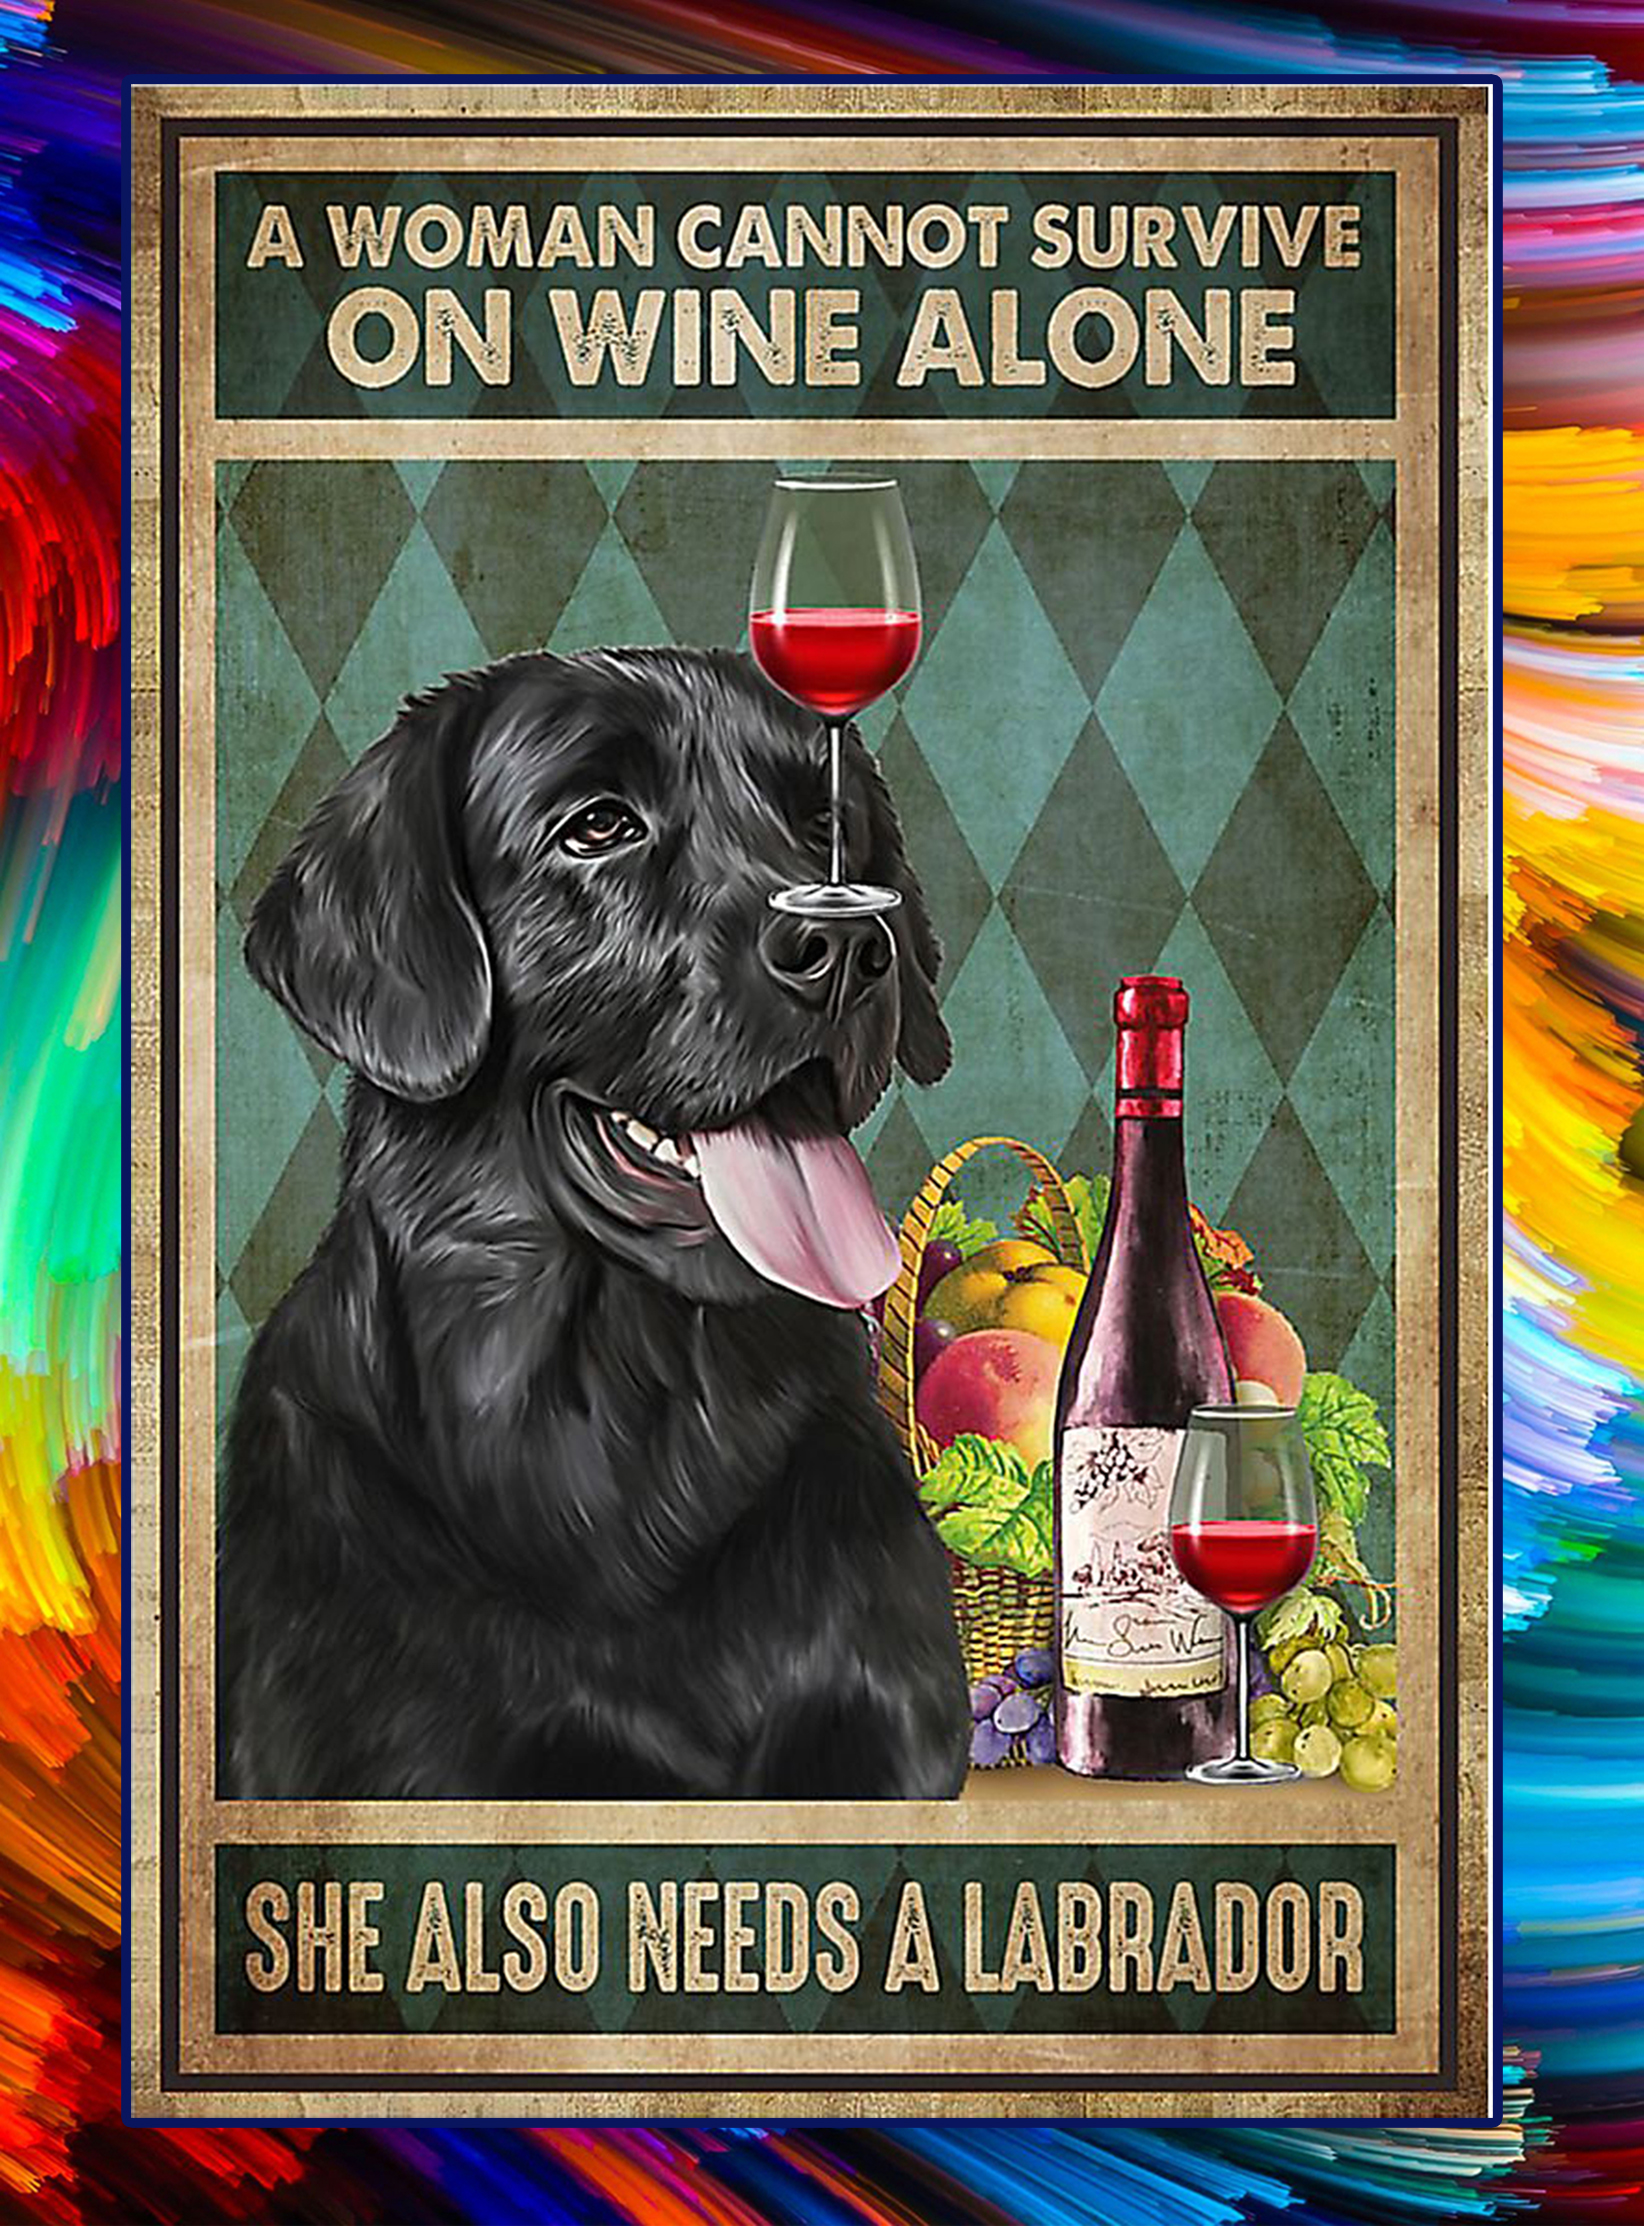 A woman cannot survive on wine alone she also needs a labrador poster - A1